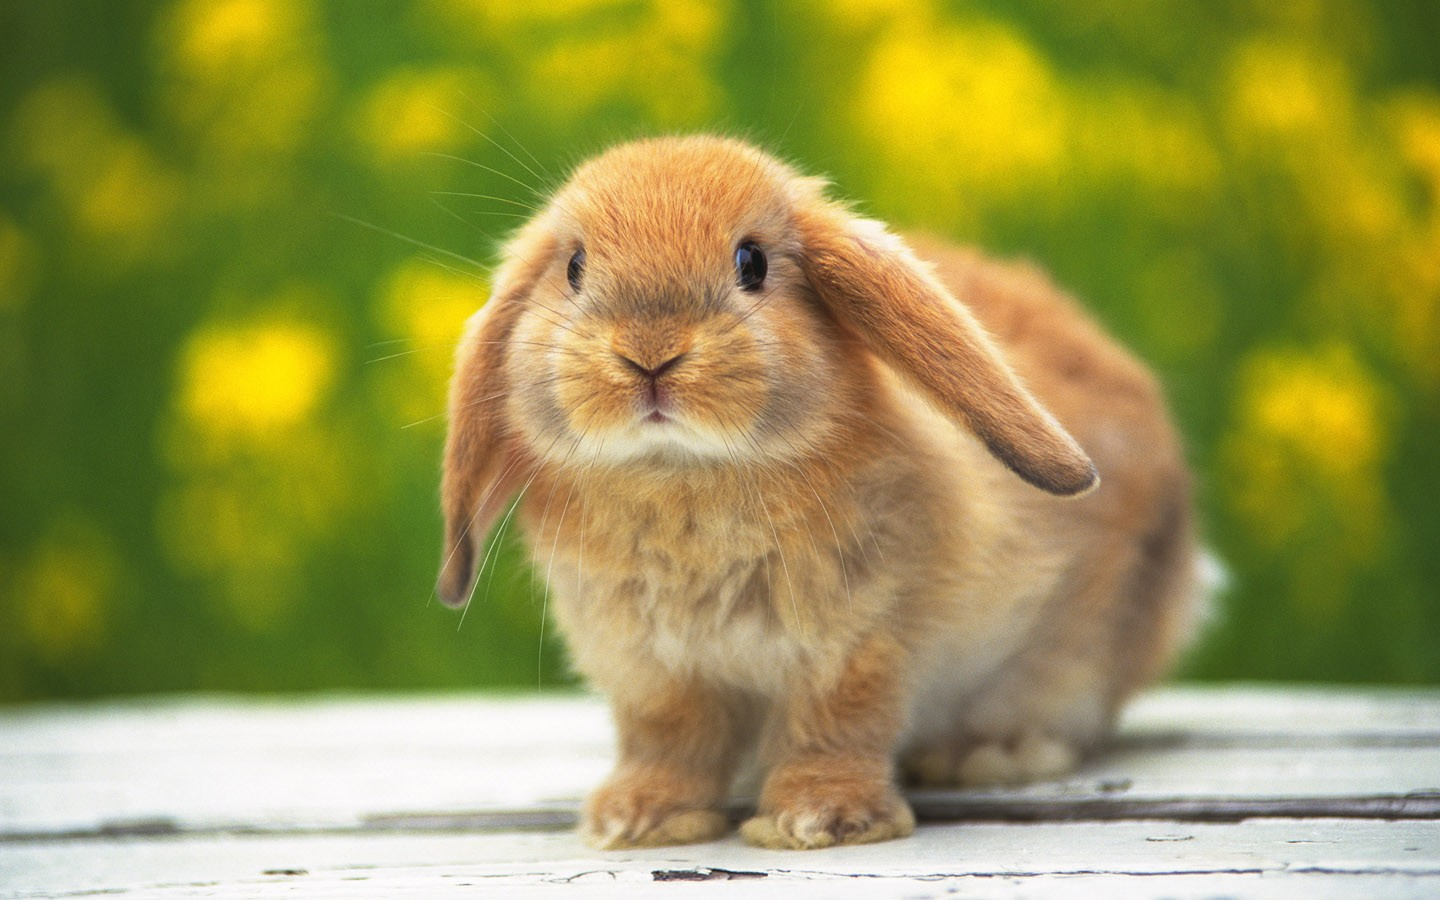 rabbit images free